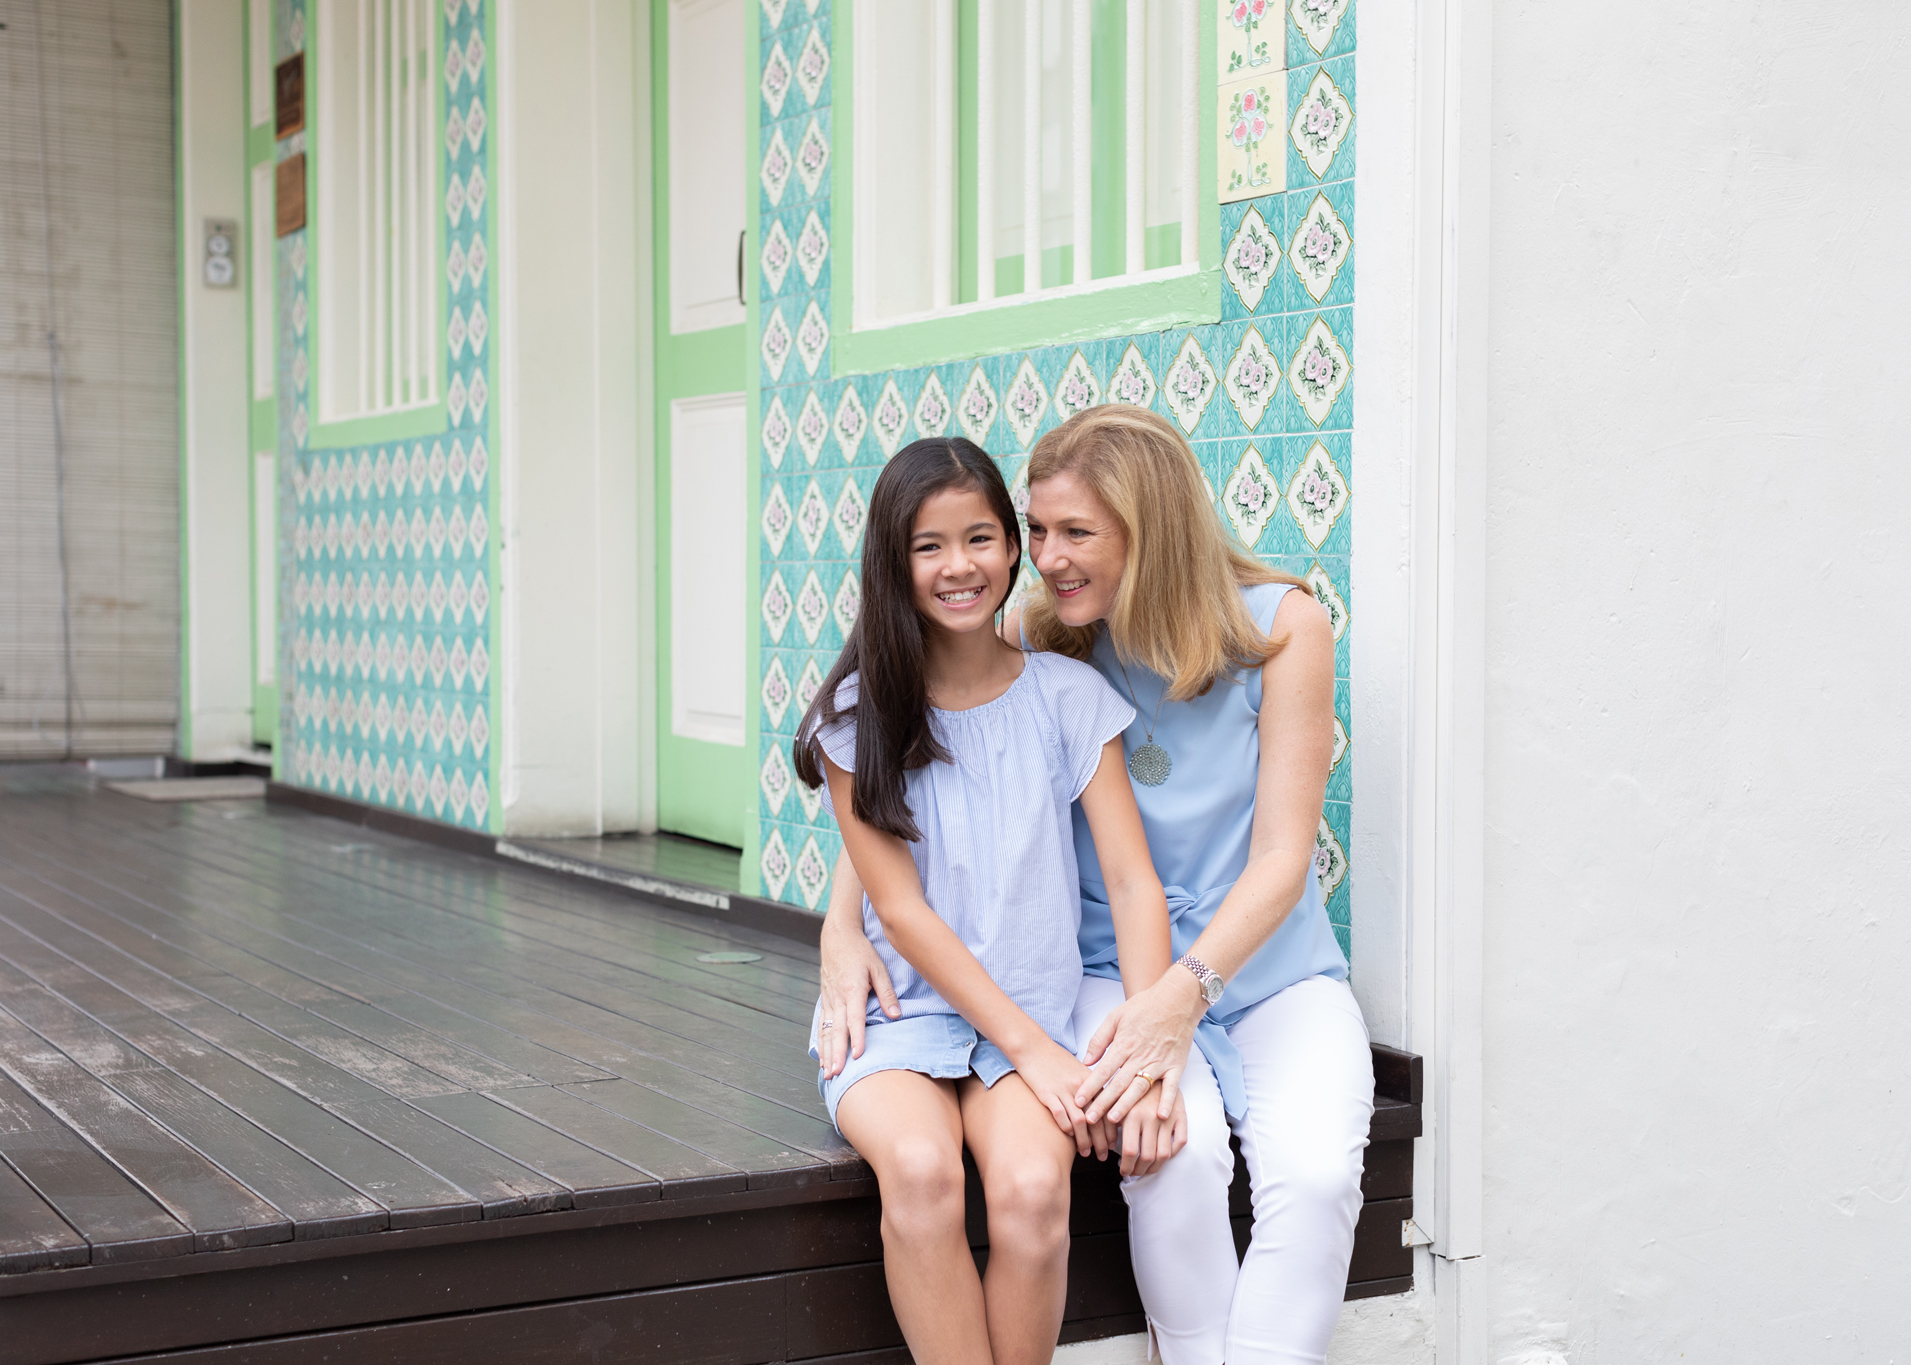 family photoshoot in urban setting mother and daughter laughing